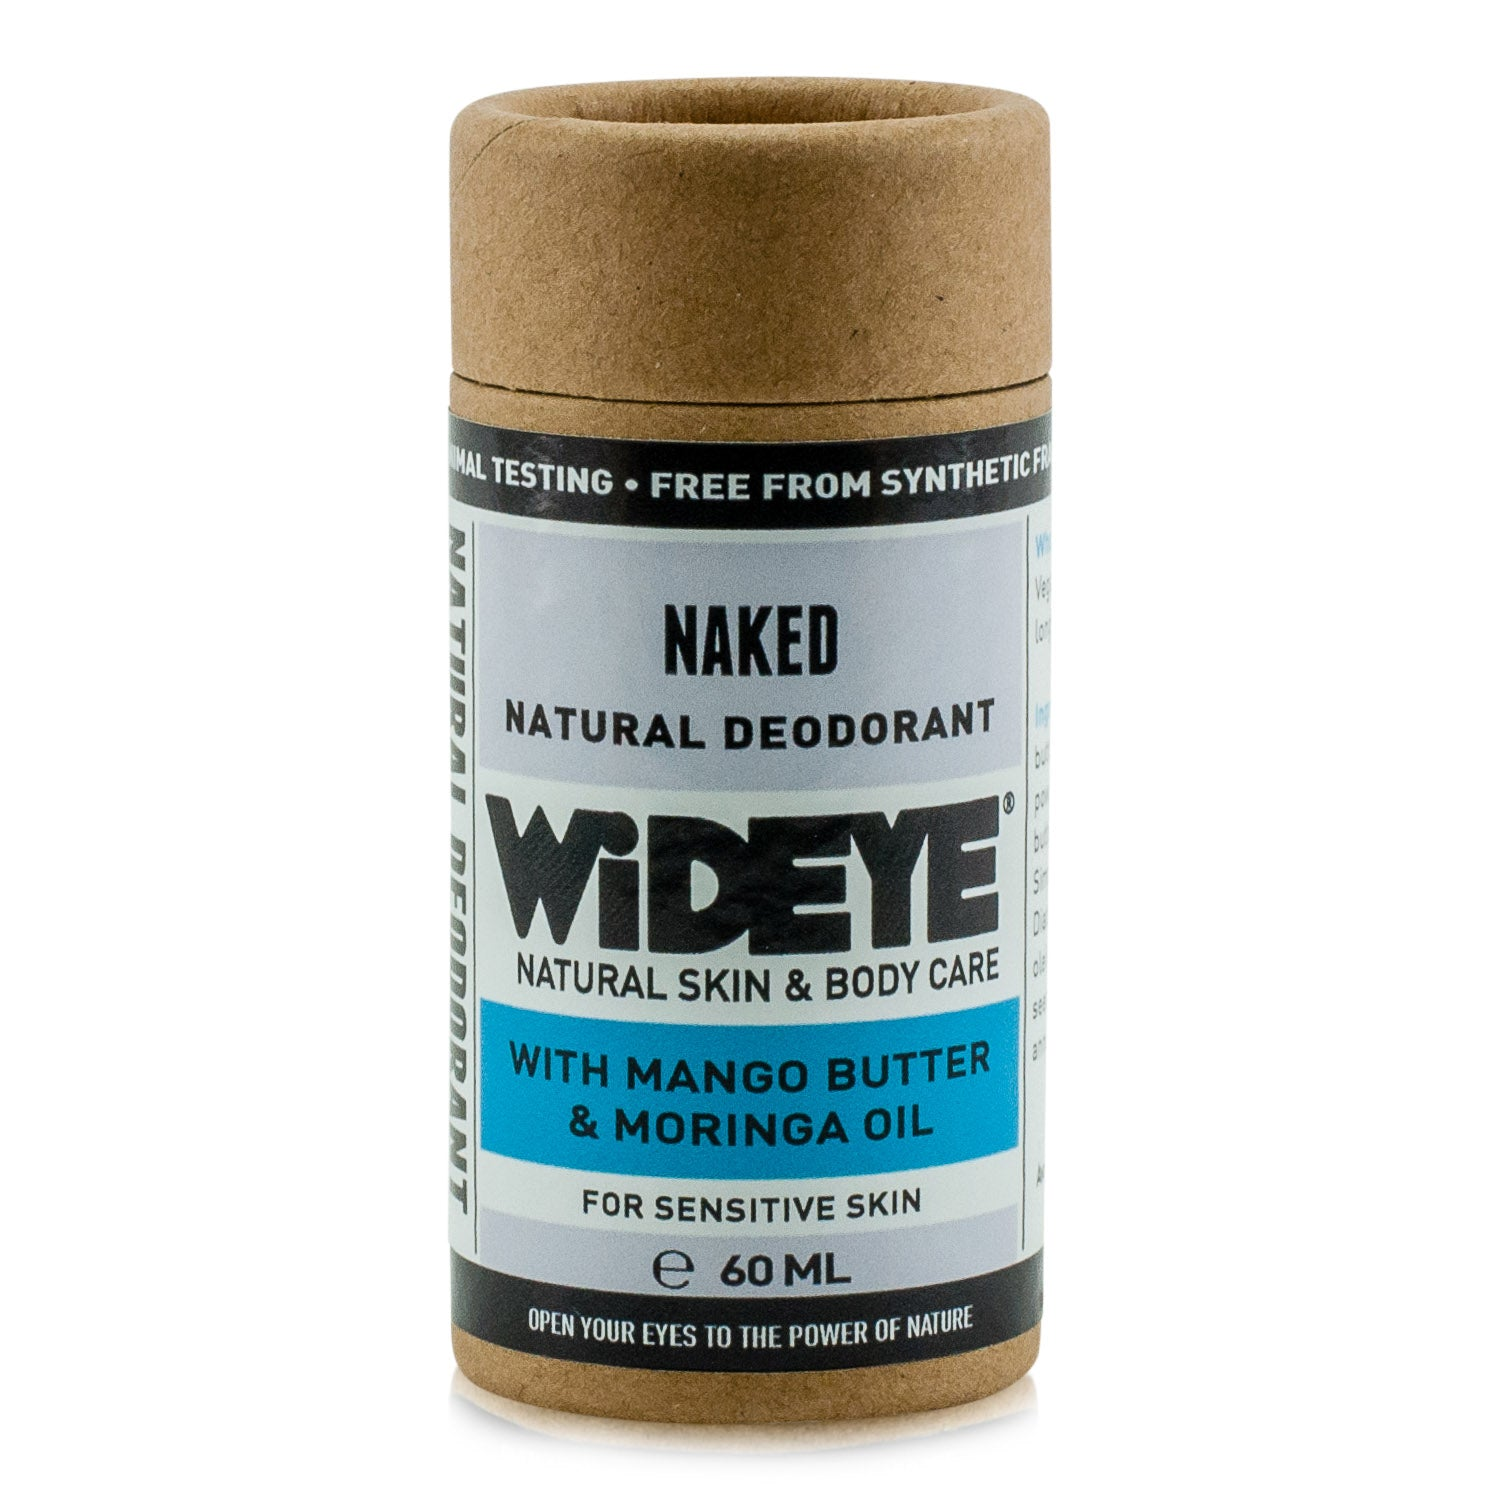 Natural vegan skincare Naked deodorant in recyclable cardboard container handmade by WiDEYE in Rye.